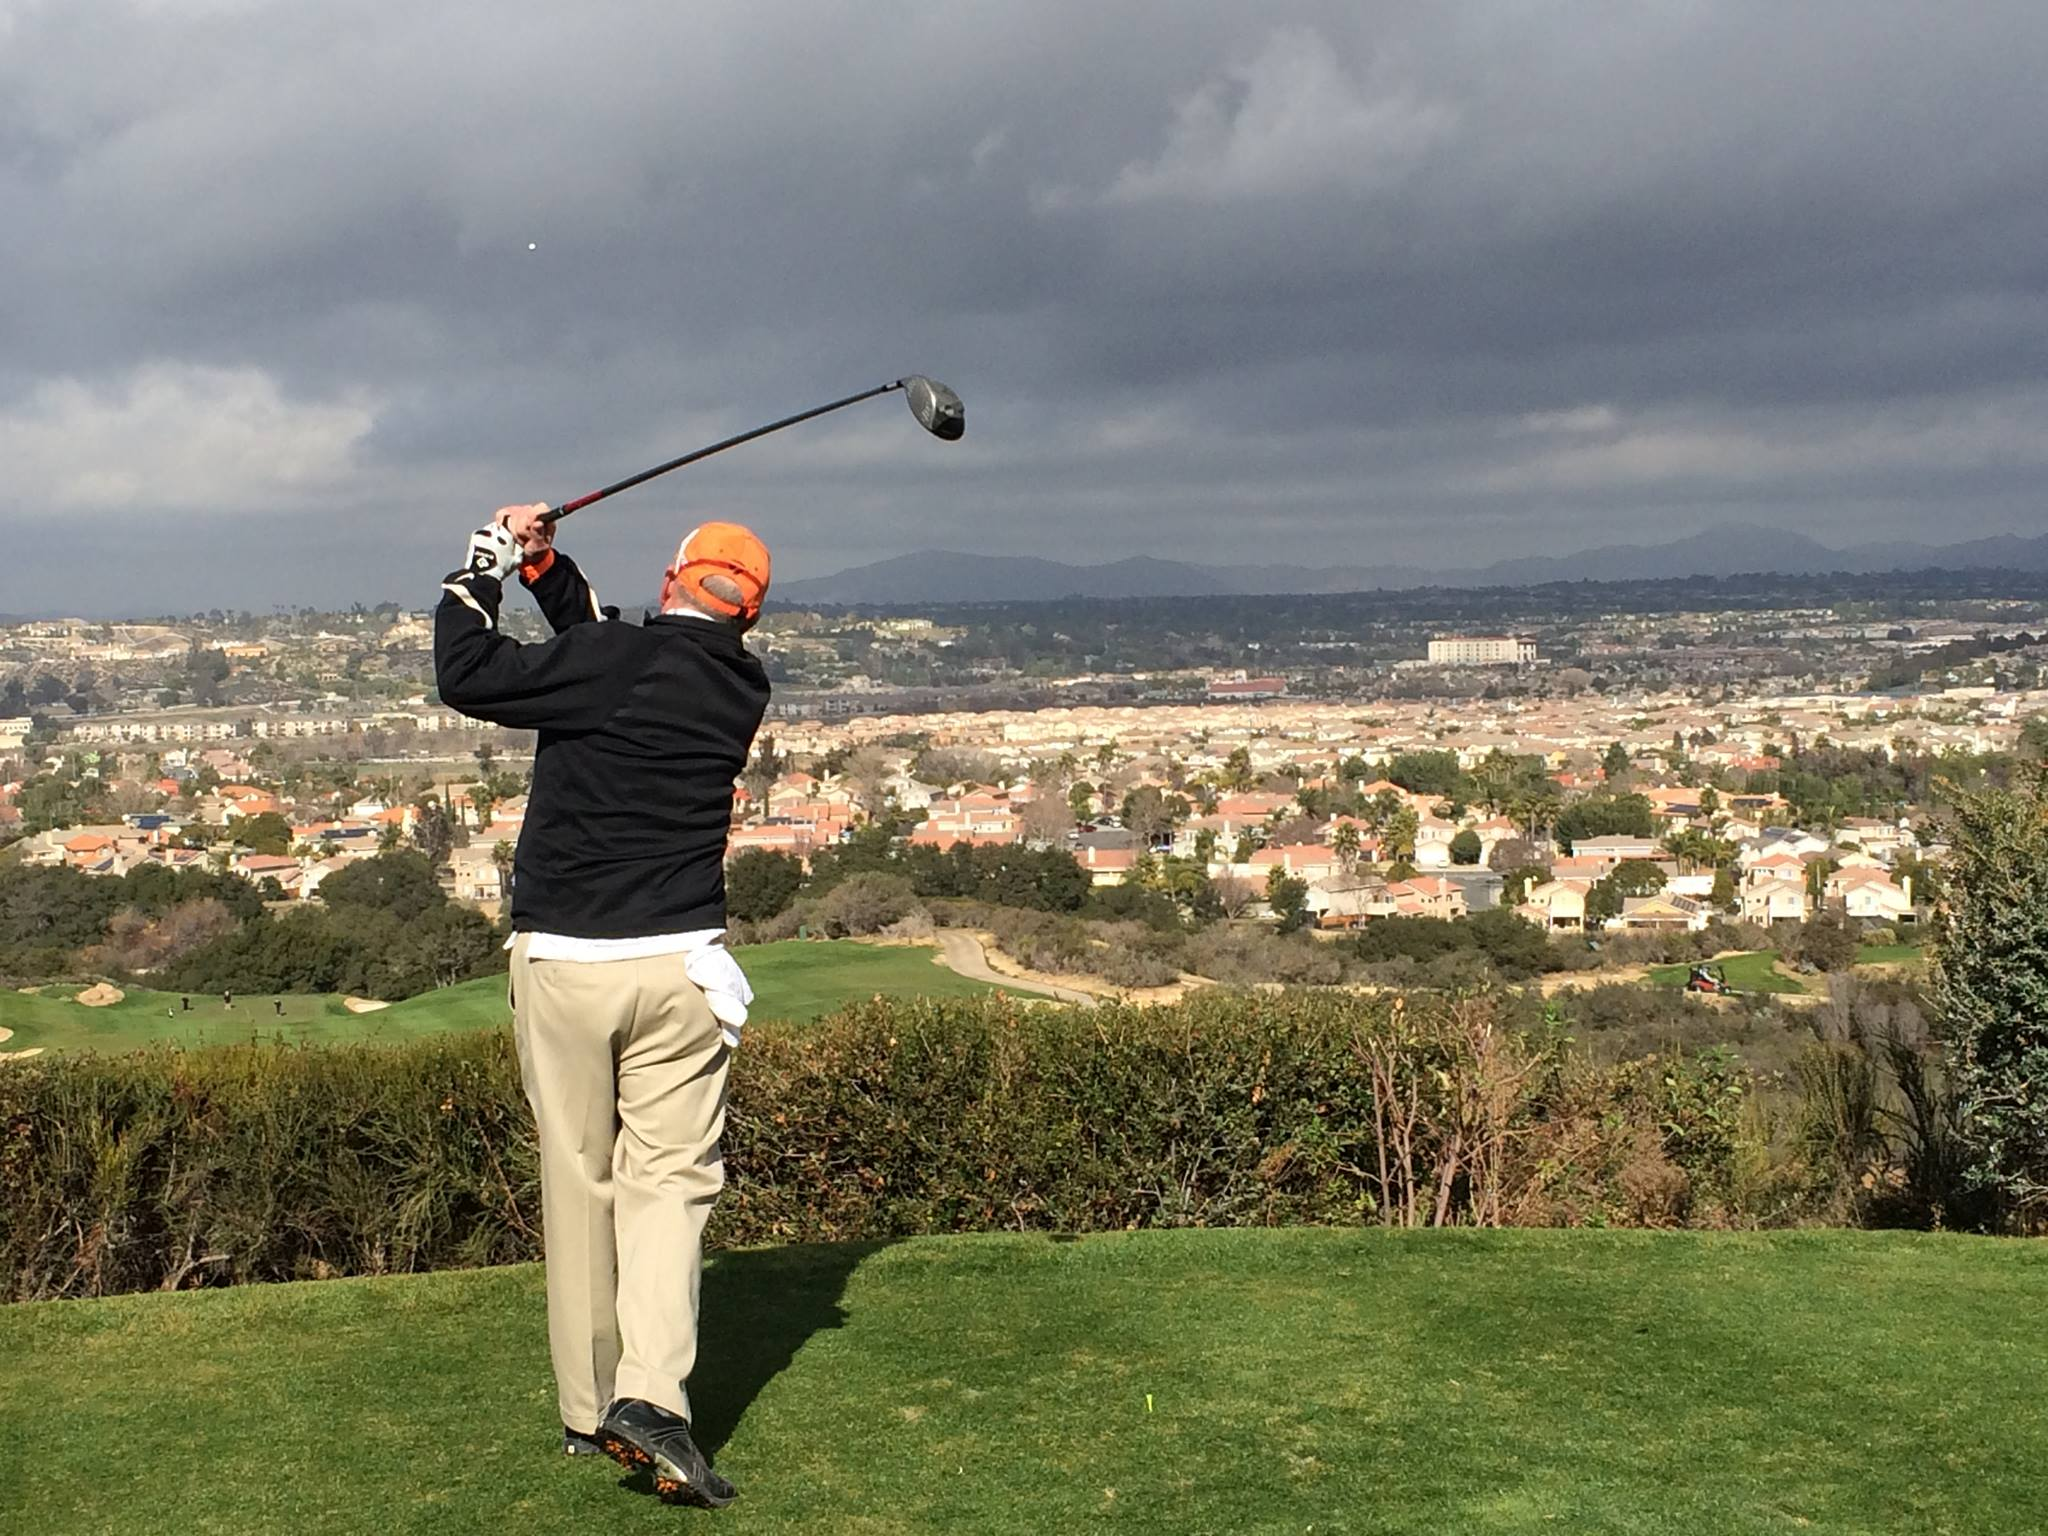 Scott follow thru golf pix Pechanga.jpg